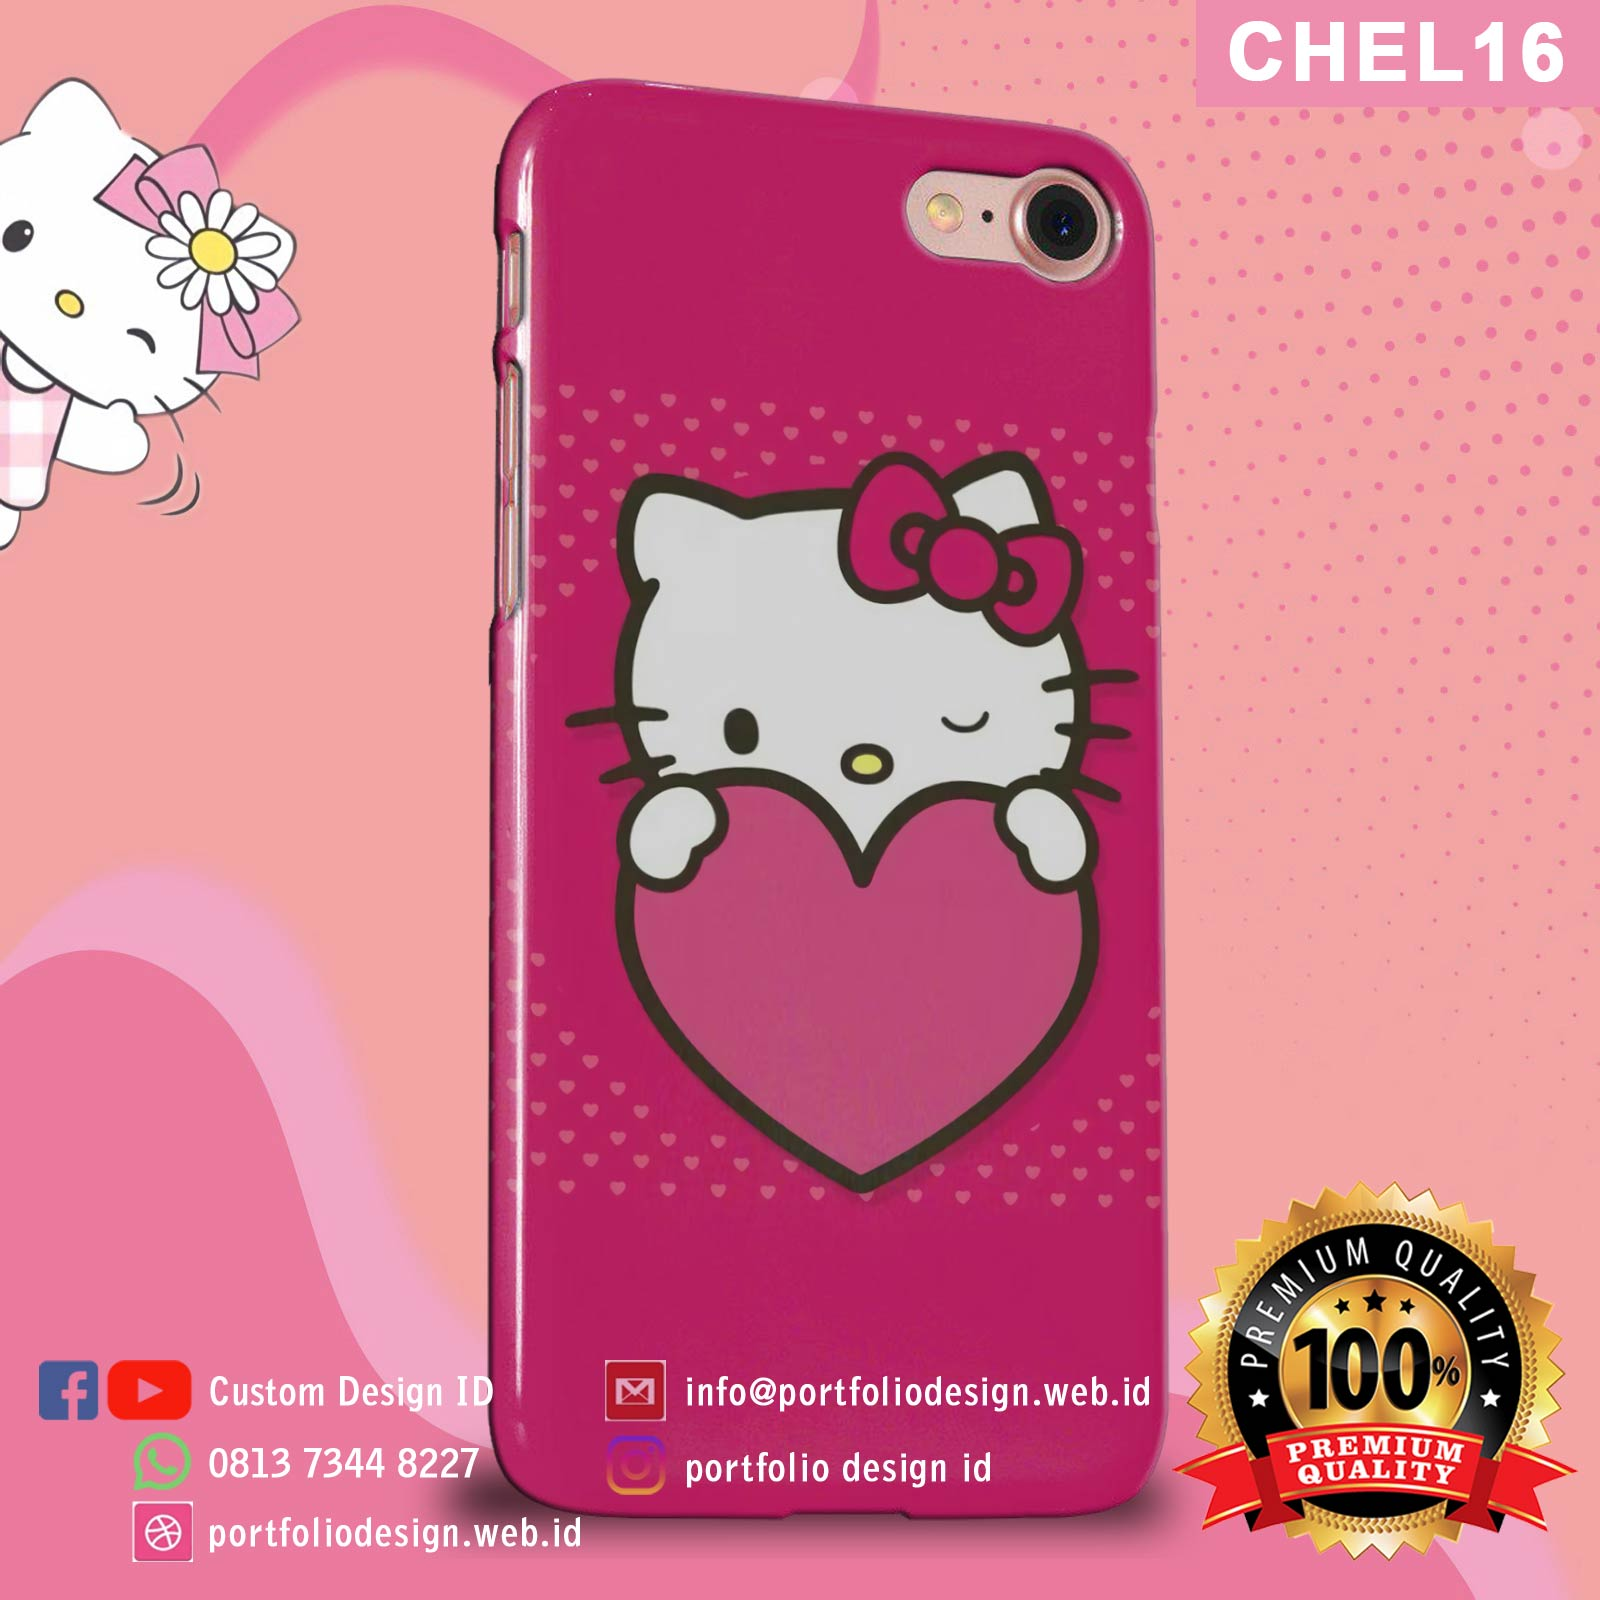 Aksesoris casing hp softcase hardcase Hello Kitty CHEL16